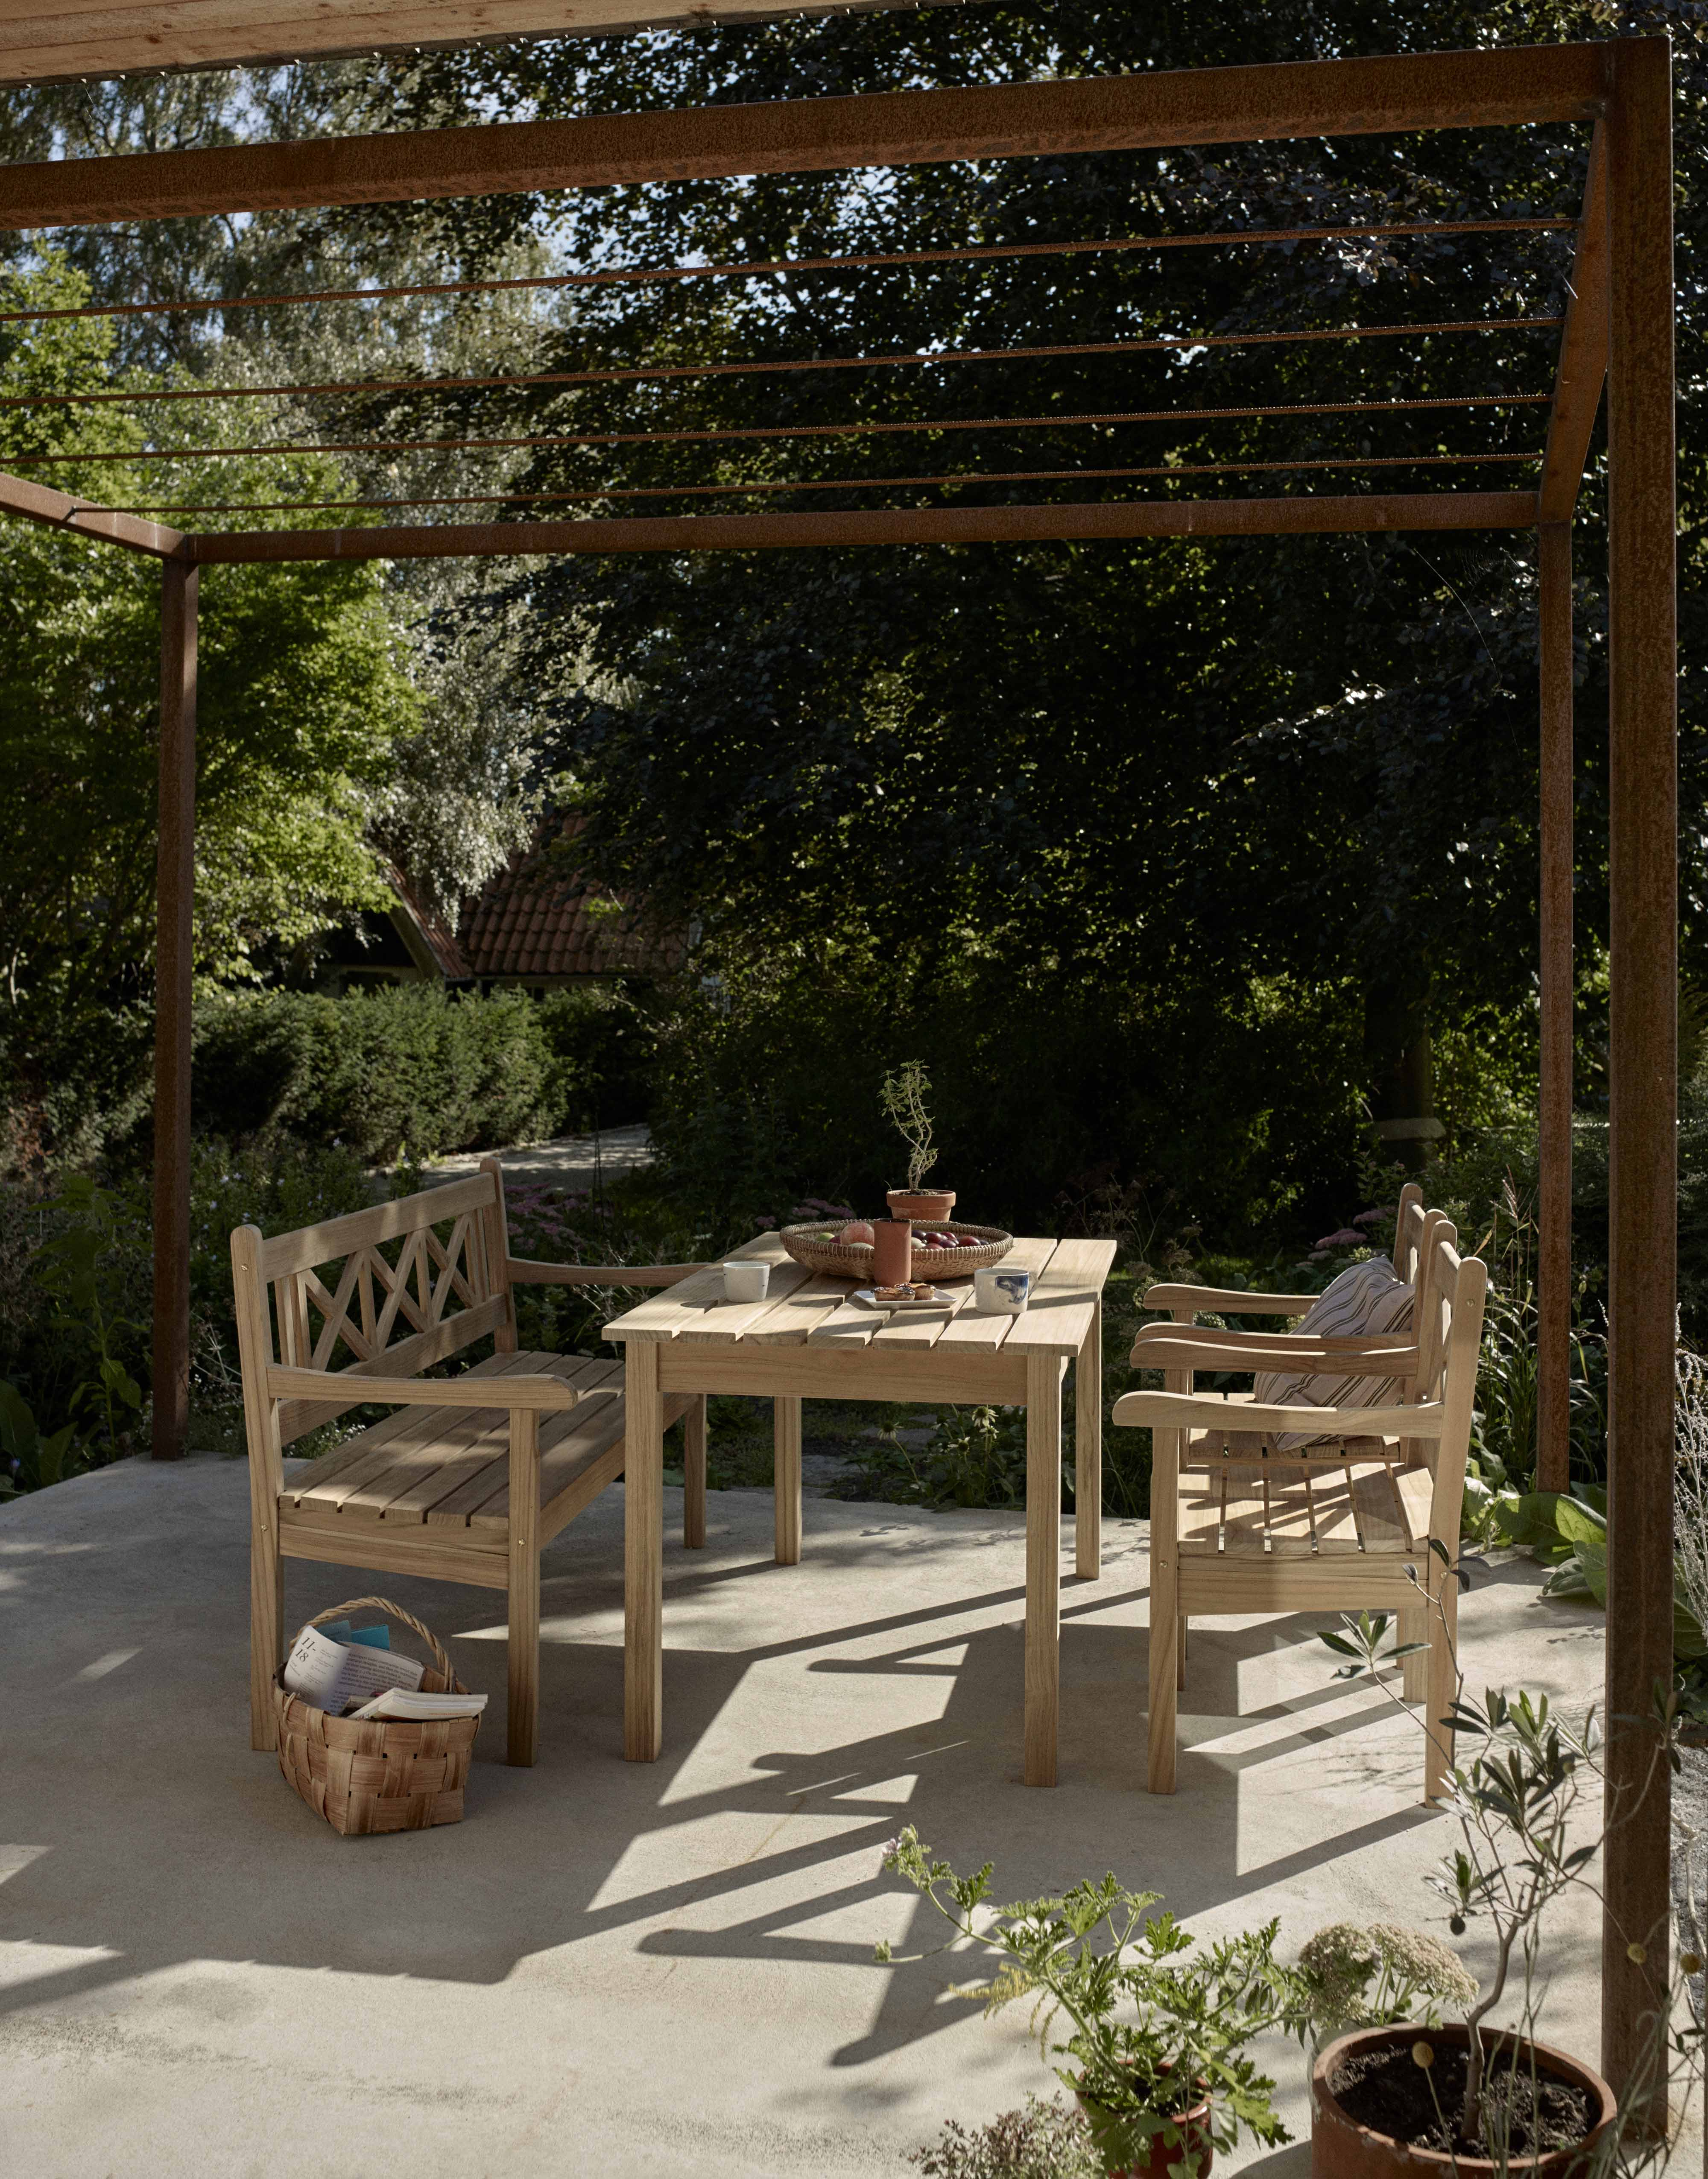 10 of the best outdoor dining sets3